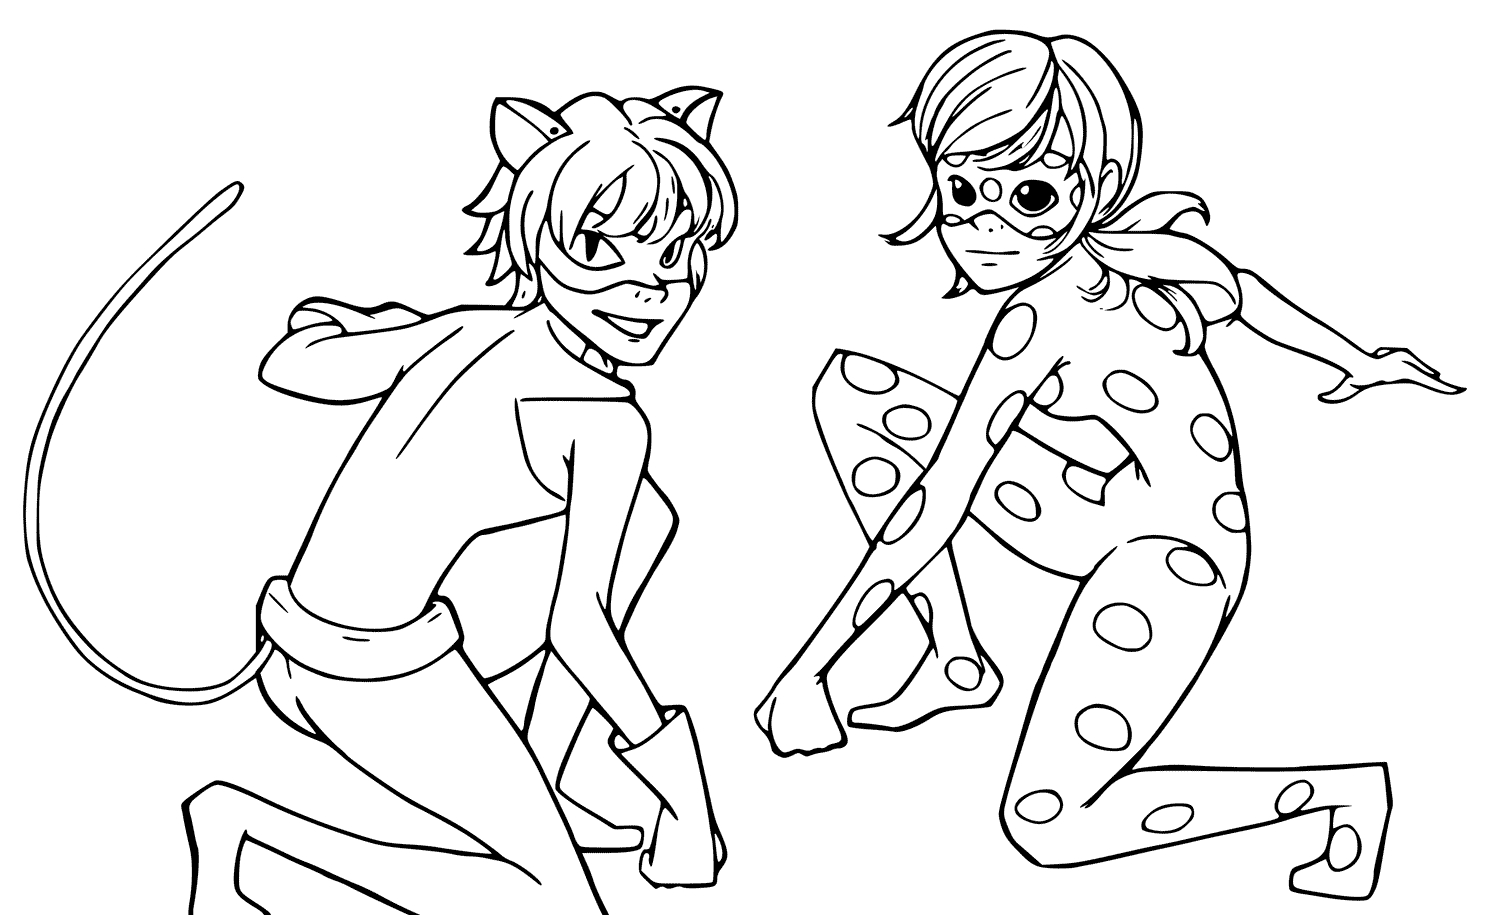 Ladybug And Cat Noir Coloring Pages Ladybug And Cat Noir Coloring